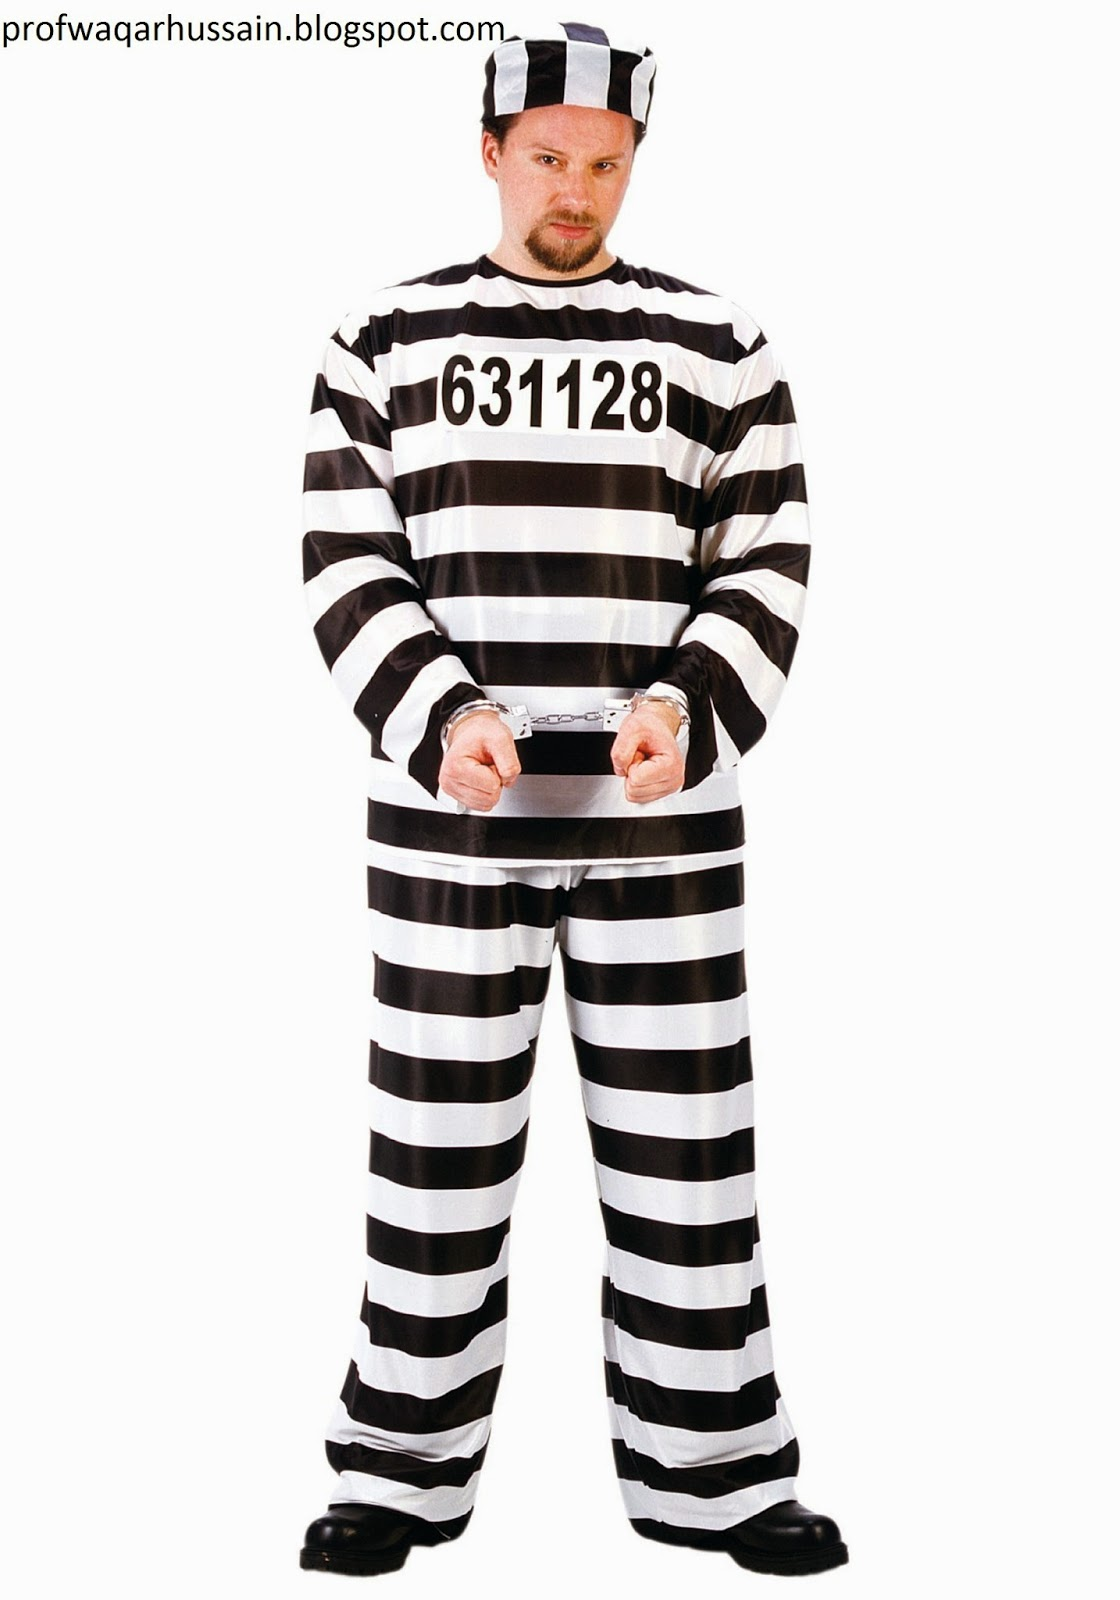 Articles Why Prisoner Uses White And Black Stripe Uniform